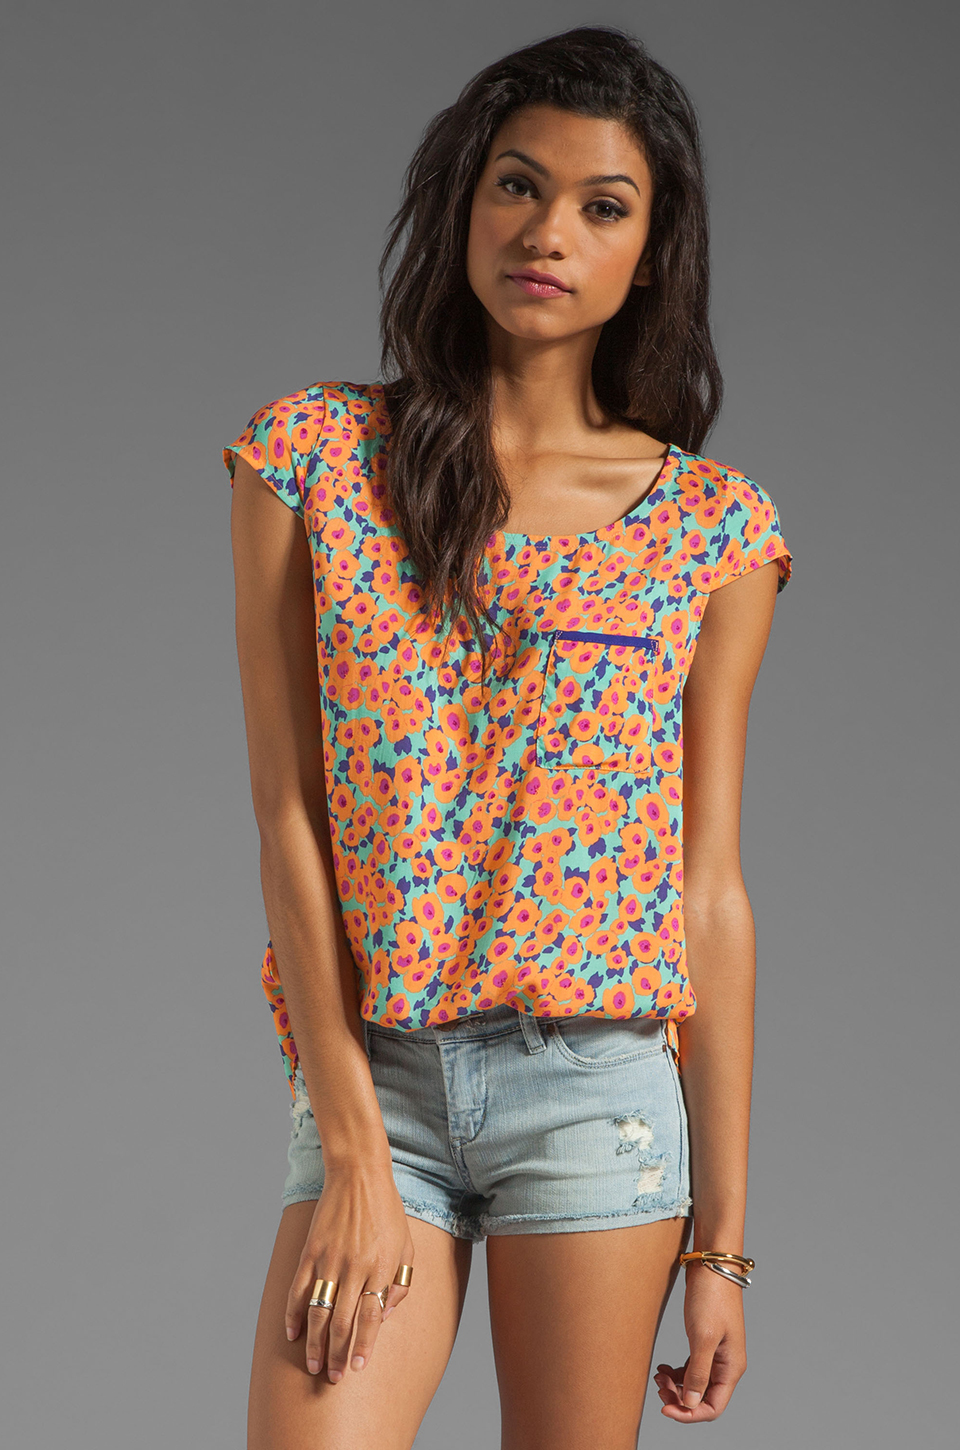 Splendid Watercolor Floral Pocket Top in Apricot